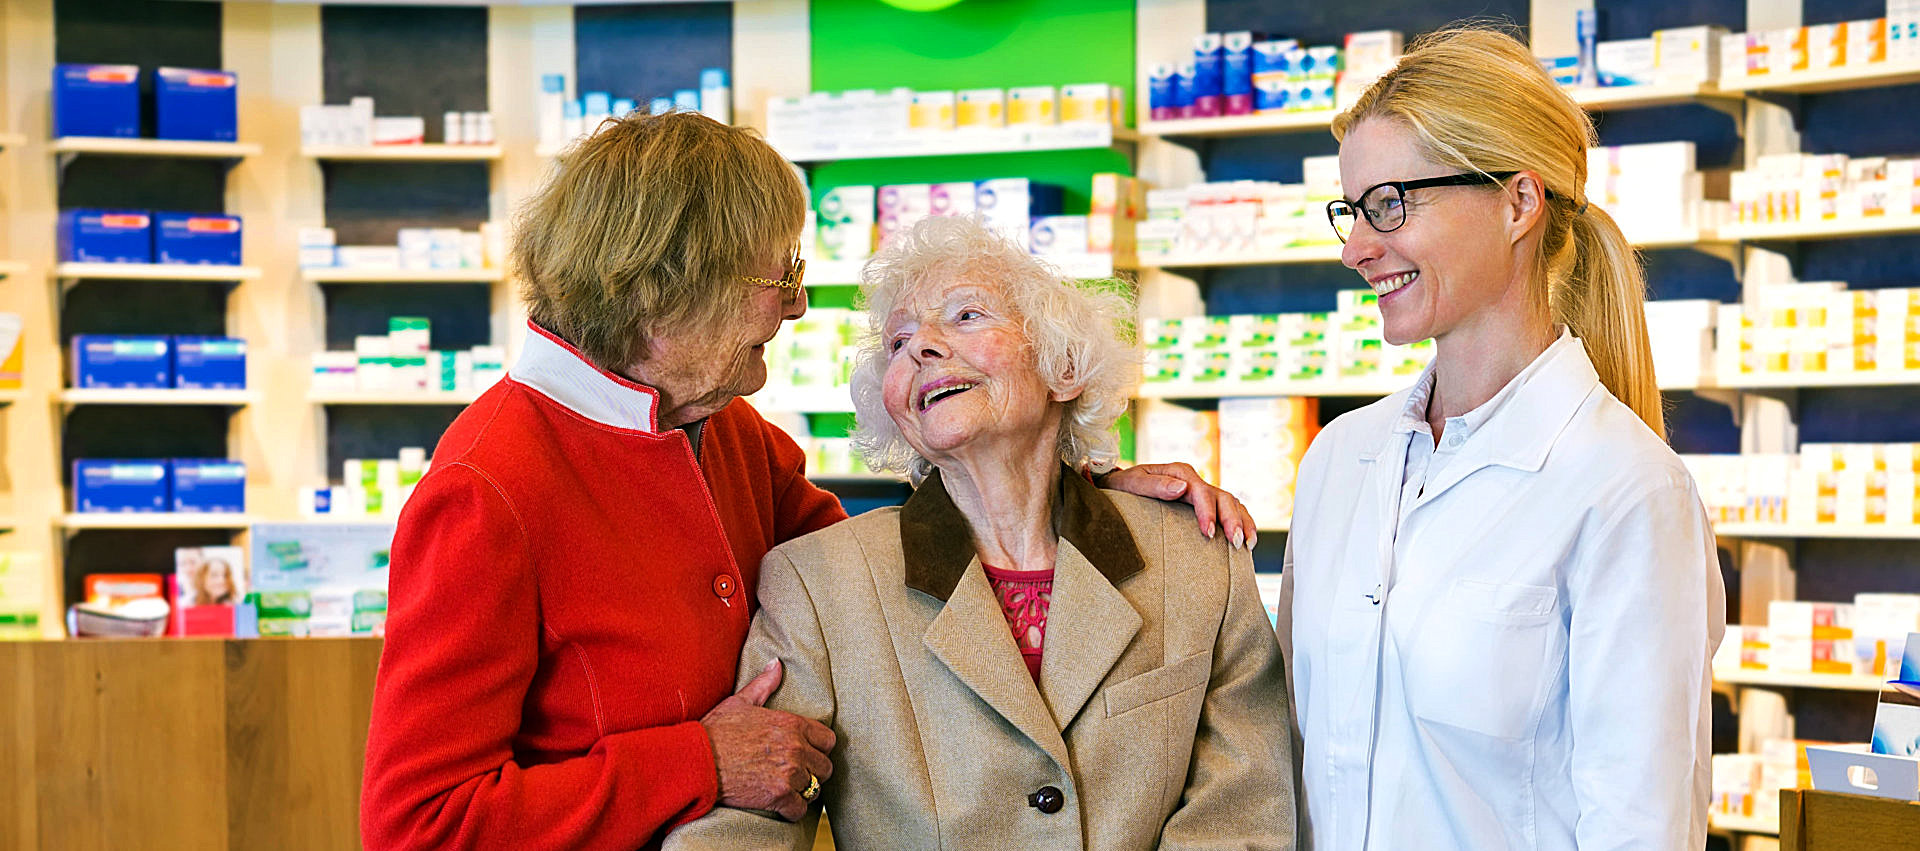 elder woman with a friend on a pharmacy